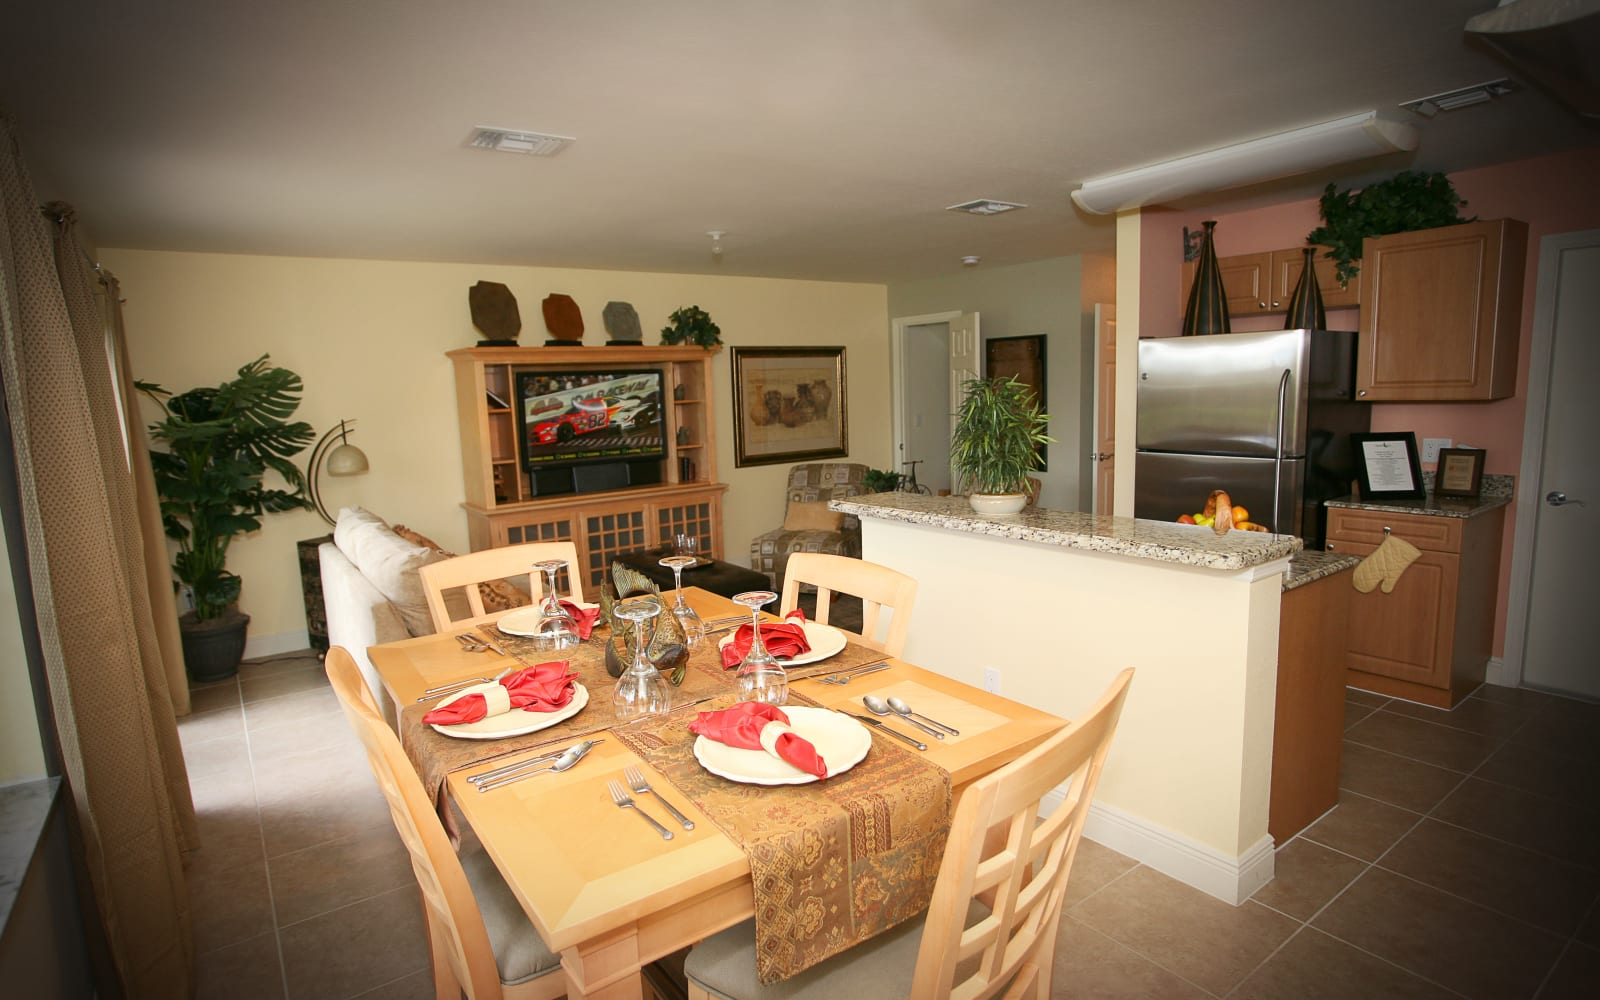 Kitchen and dining room at Green Cay Village in Boynton Beach, Florida